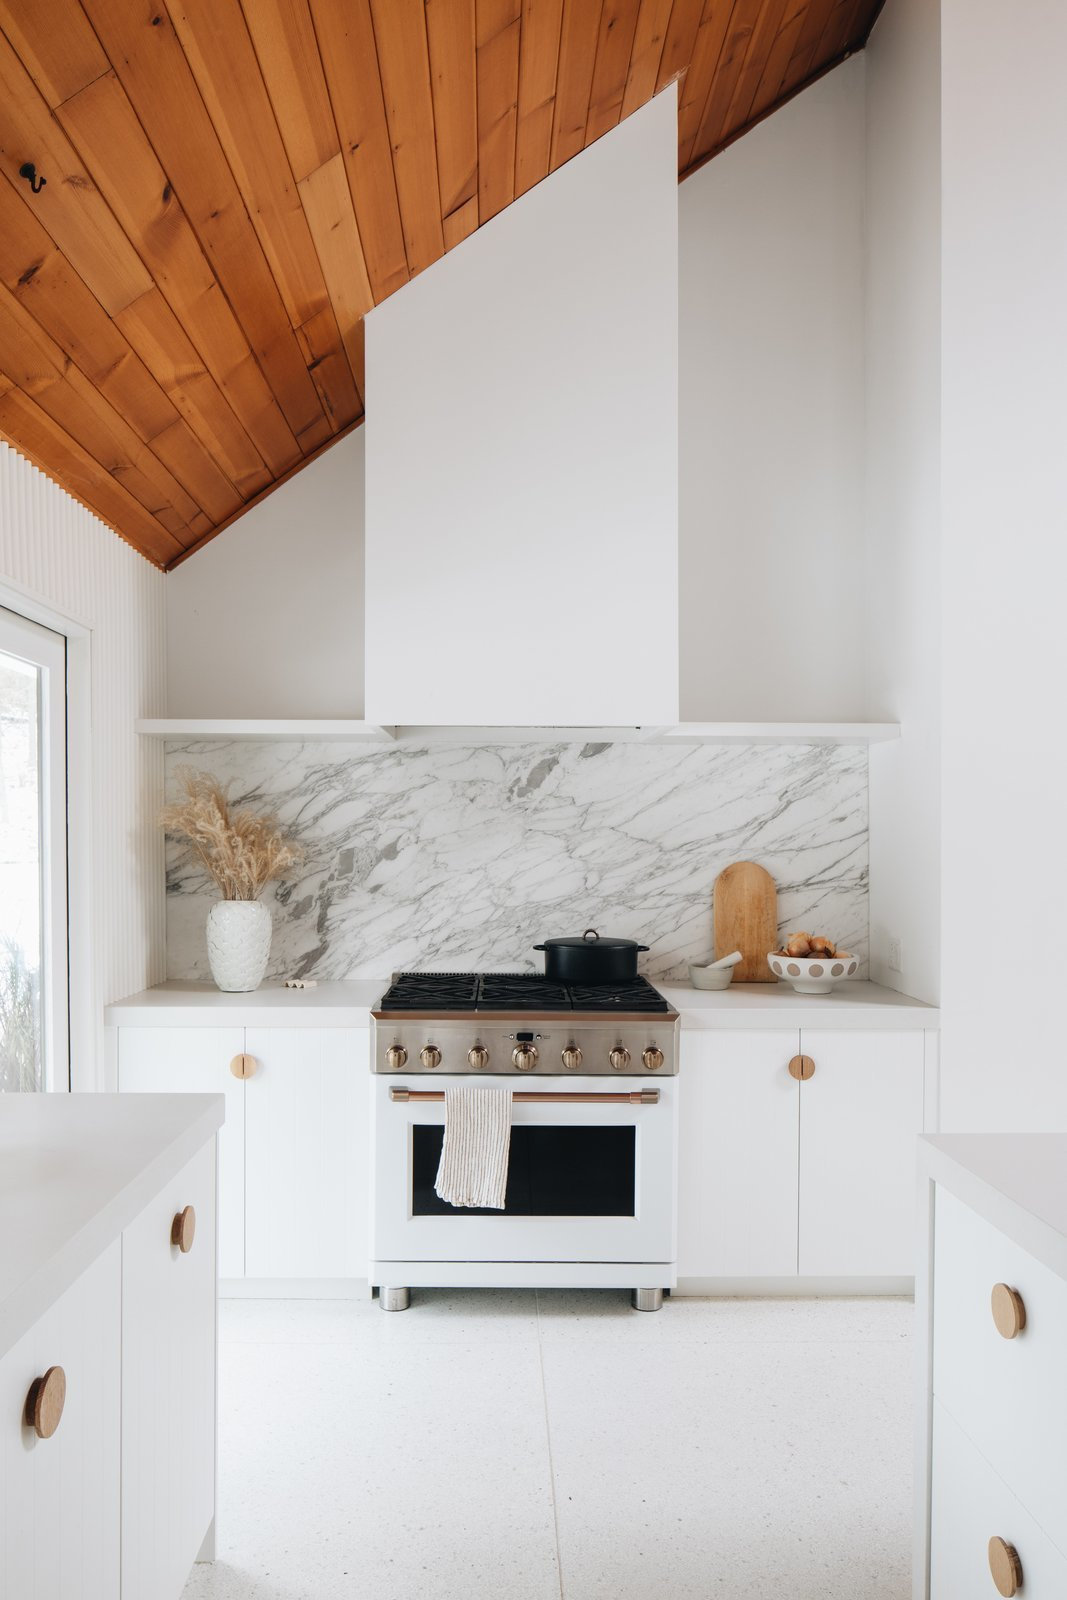 Kitchen, Engineered Quartz Counter, Cooktops, Marble Backsplashe, and White Cabinet Samuel chose a 36-inch, matte white Cafe Appliance range oven to match the rest of the white-on-white design.   Photo 5 of 9 in 9 Countertop and Cabinetry Pairings to Take Your Kitchen From Drab to Delicious